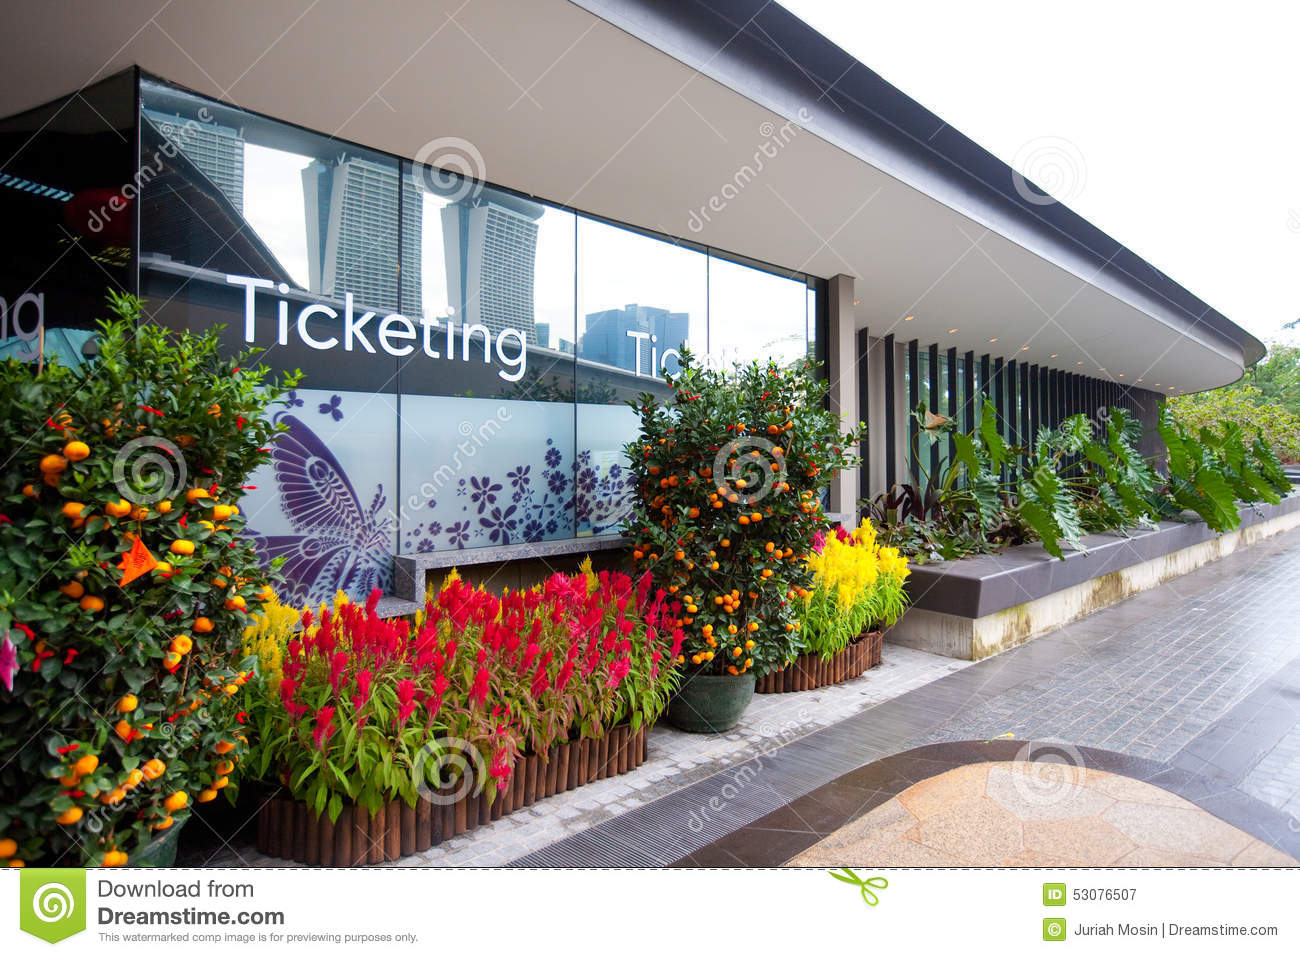 Ticketing Office For The Gardens By The Bay, Singapore